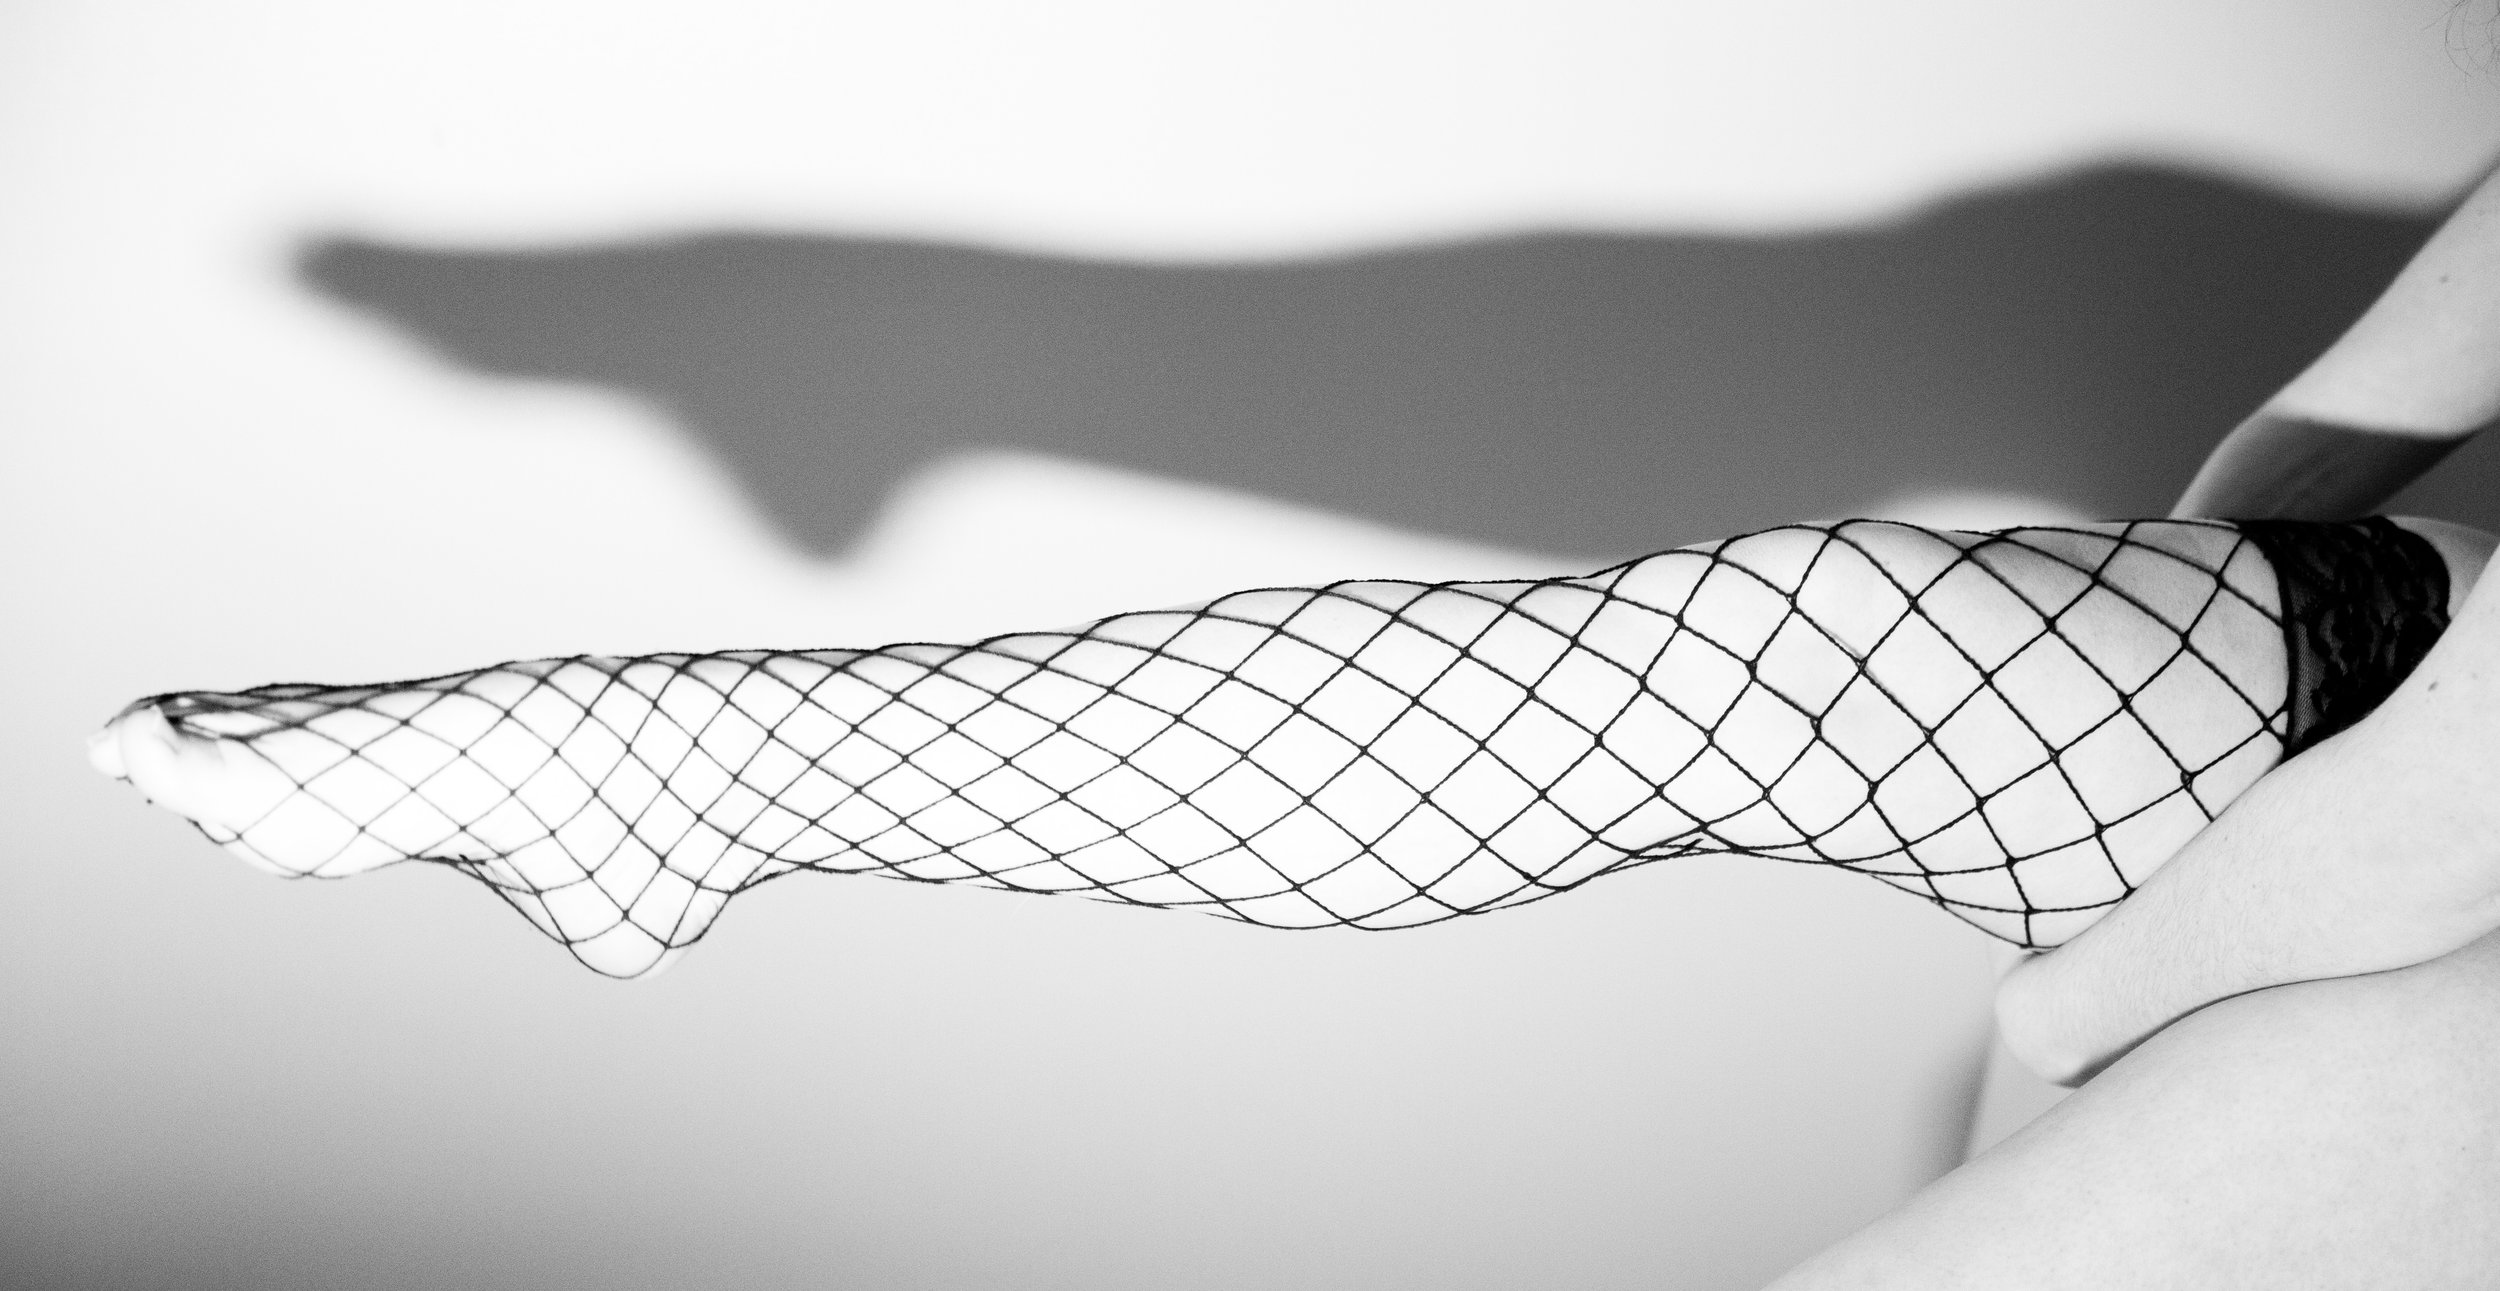 long legs in fishnet stockings